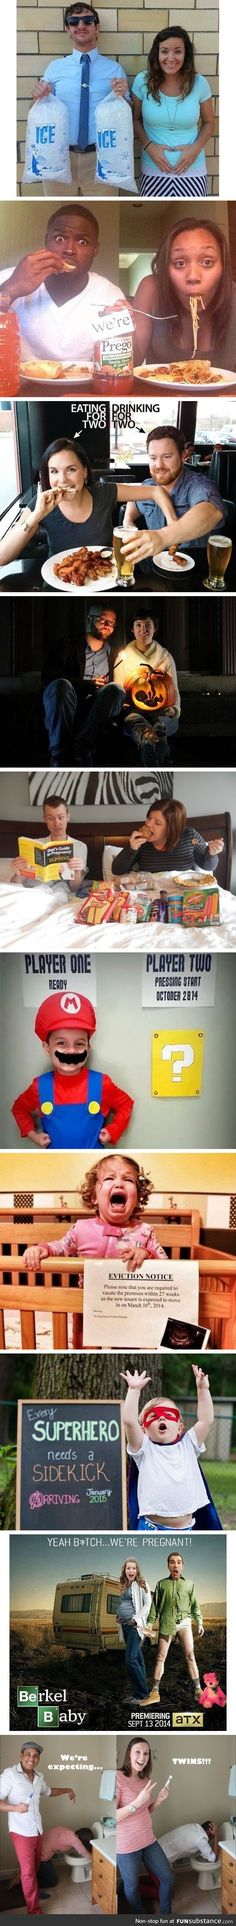 Pregnancy announcements...these are funny